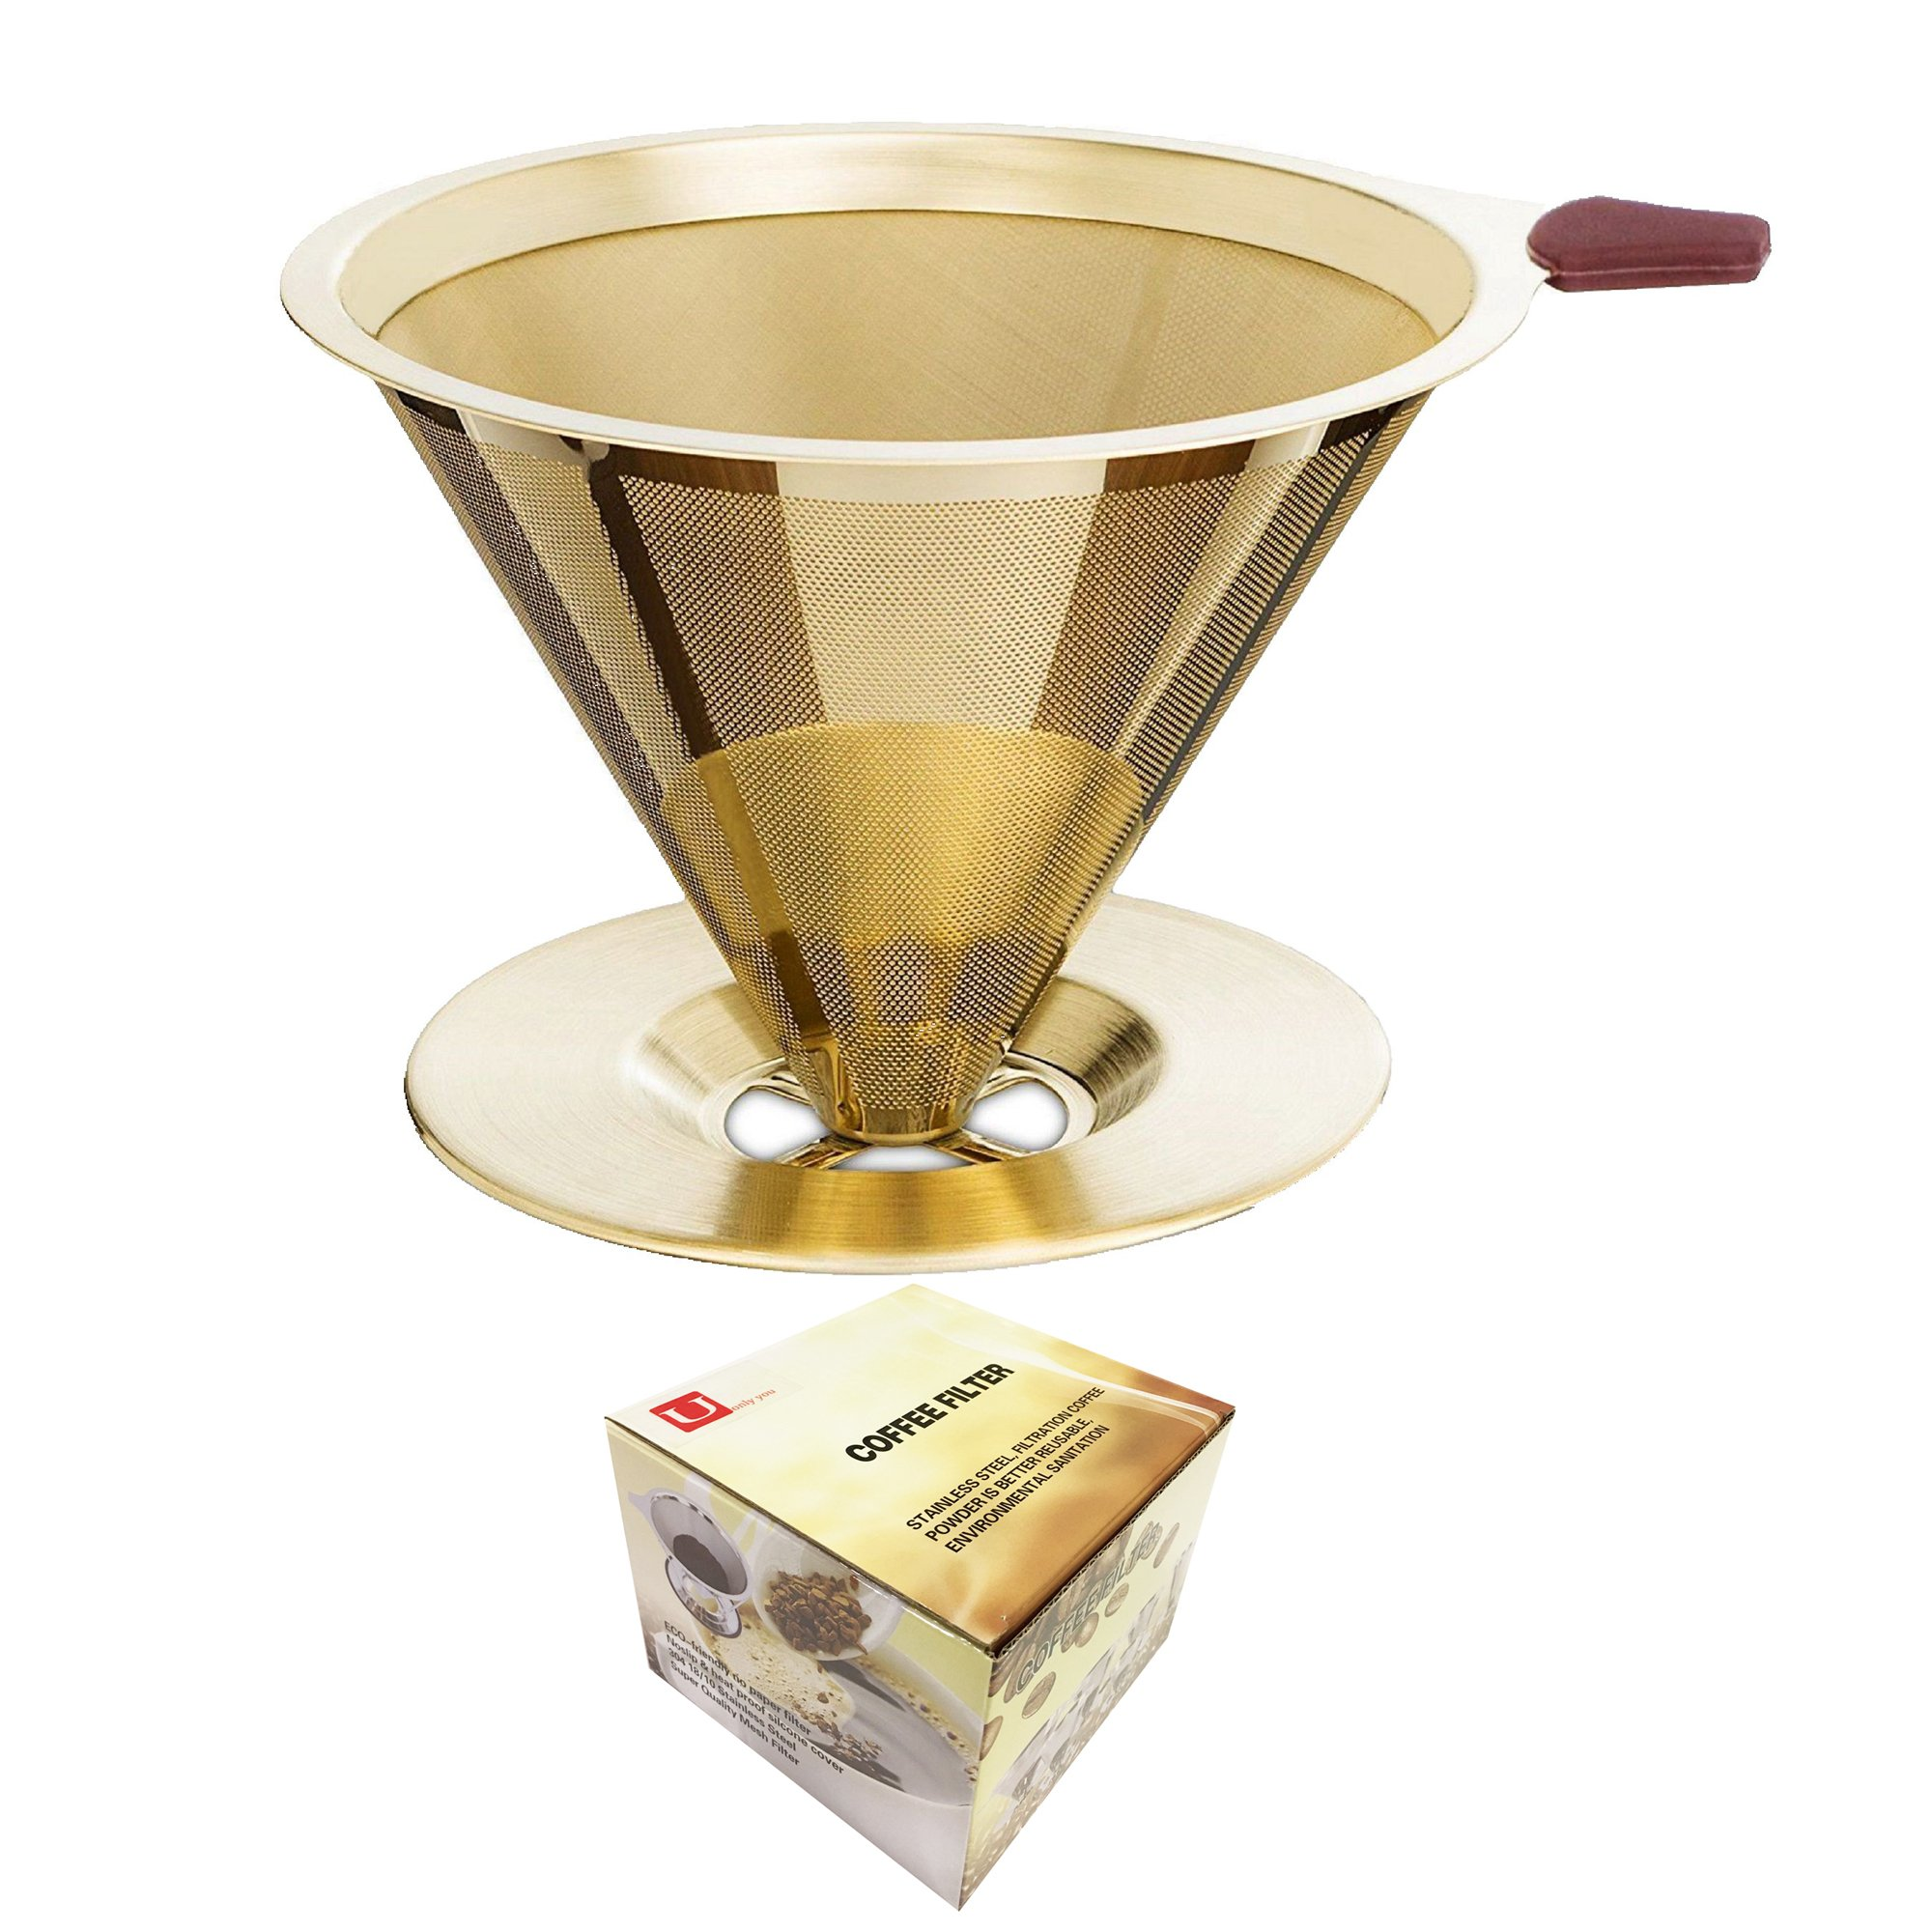 Pour Over Gold Coffee Filter,Titanium Coated Permanent Coffee Dripper with Cup Stand,Double Layered Filter,Paperless Reusable Stainless Steel Cone Coffee Maker,1- 4 Cups by U Only You (Titanium Gold)